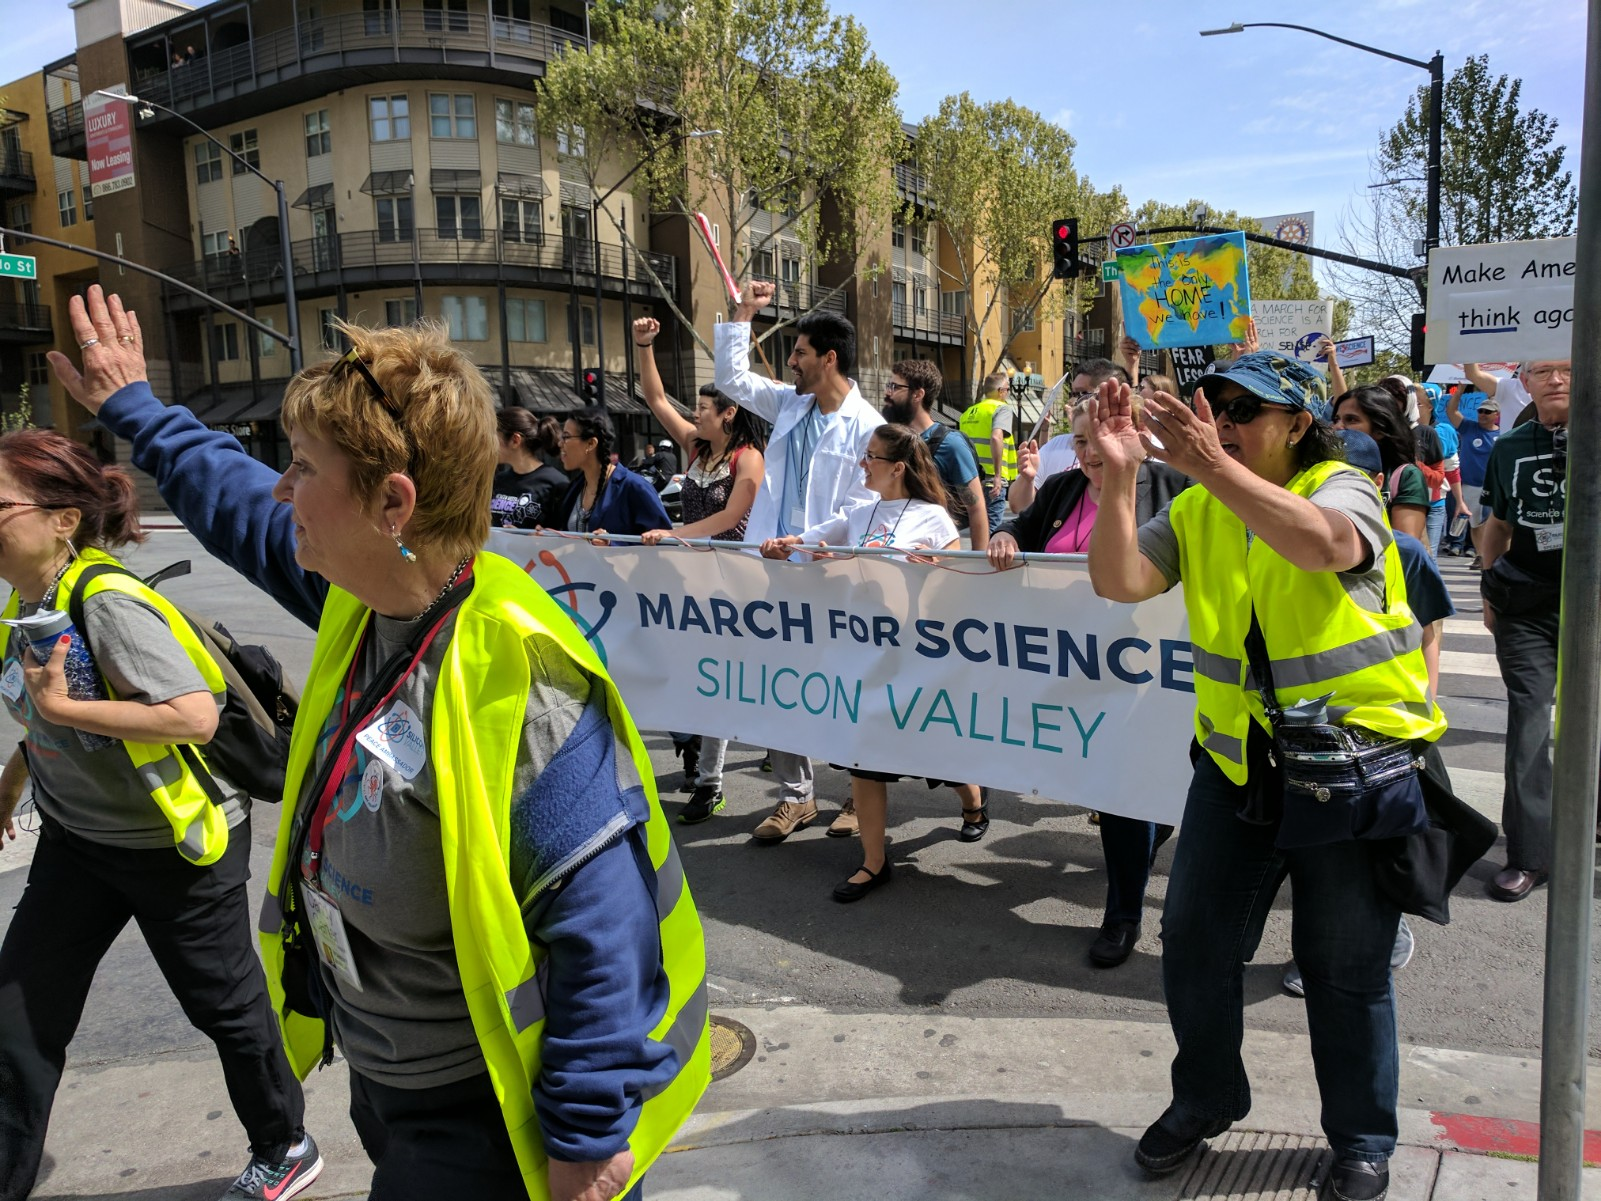 Protestors participating in the March for Science in San Jose carry signs and chant slogans. Worldwide, 610 satellite marches were held in addition to the main march in Washington, D.C.